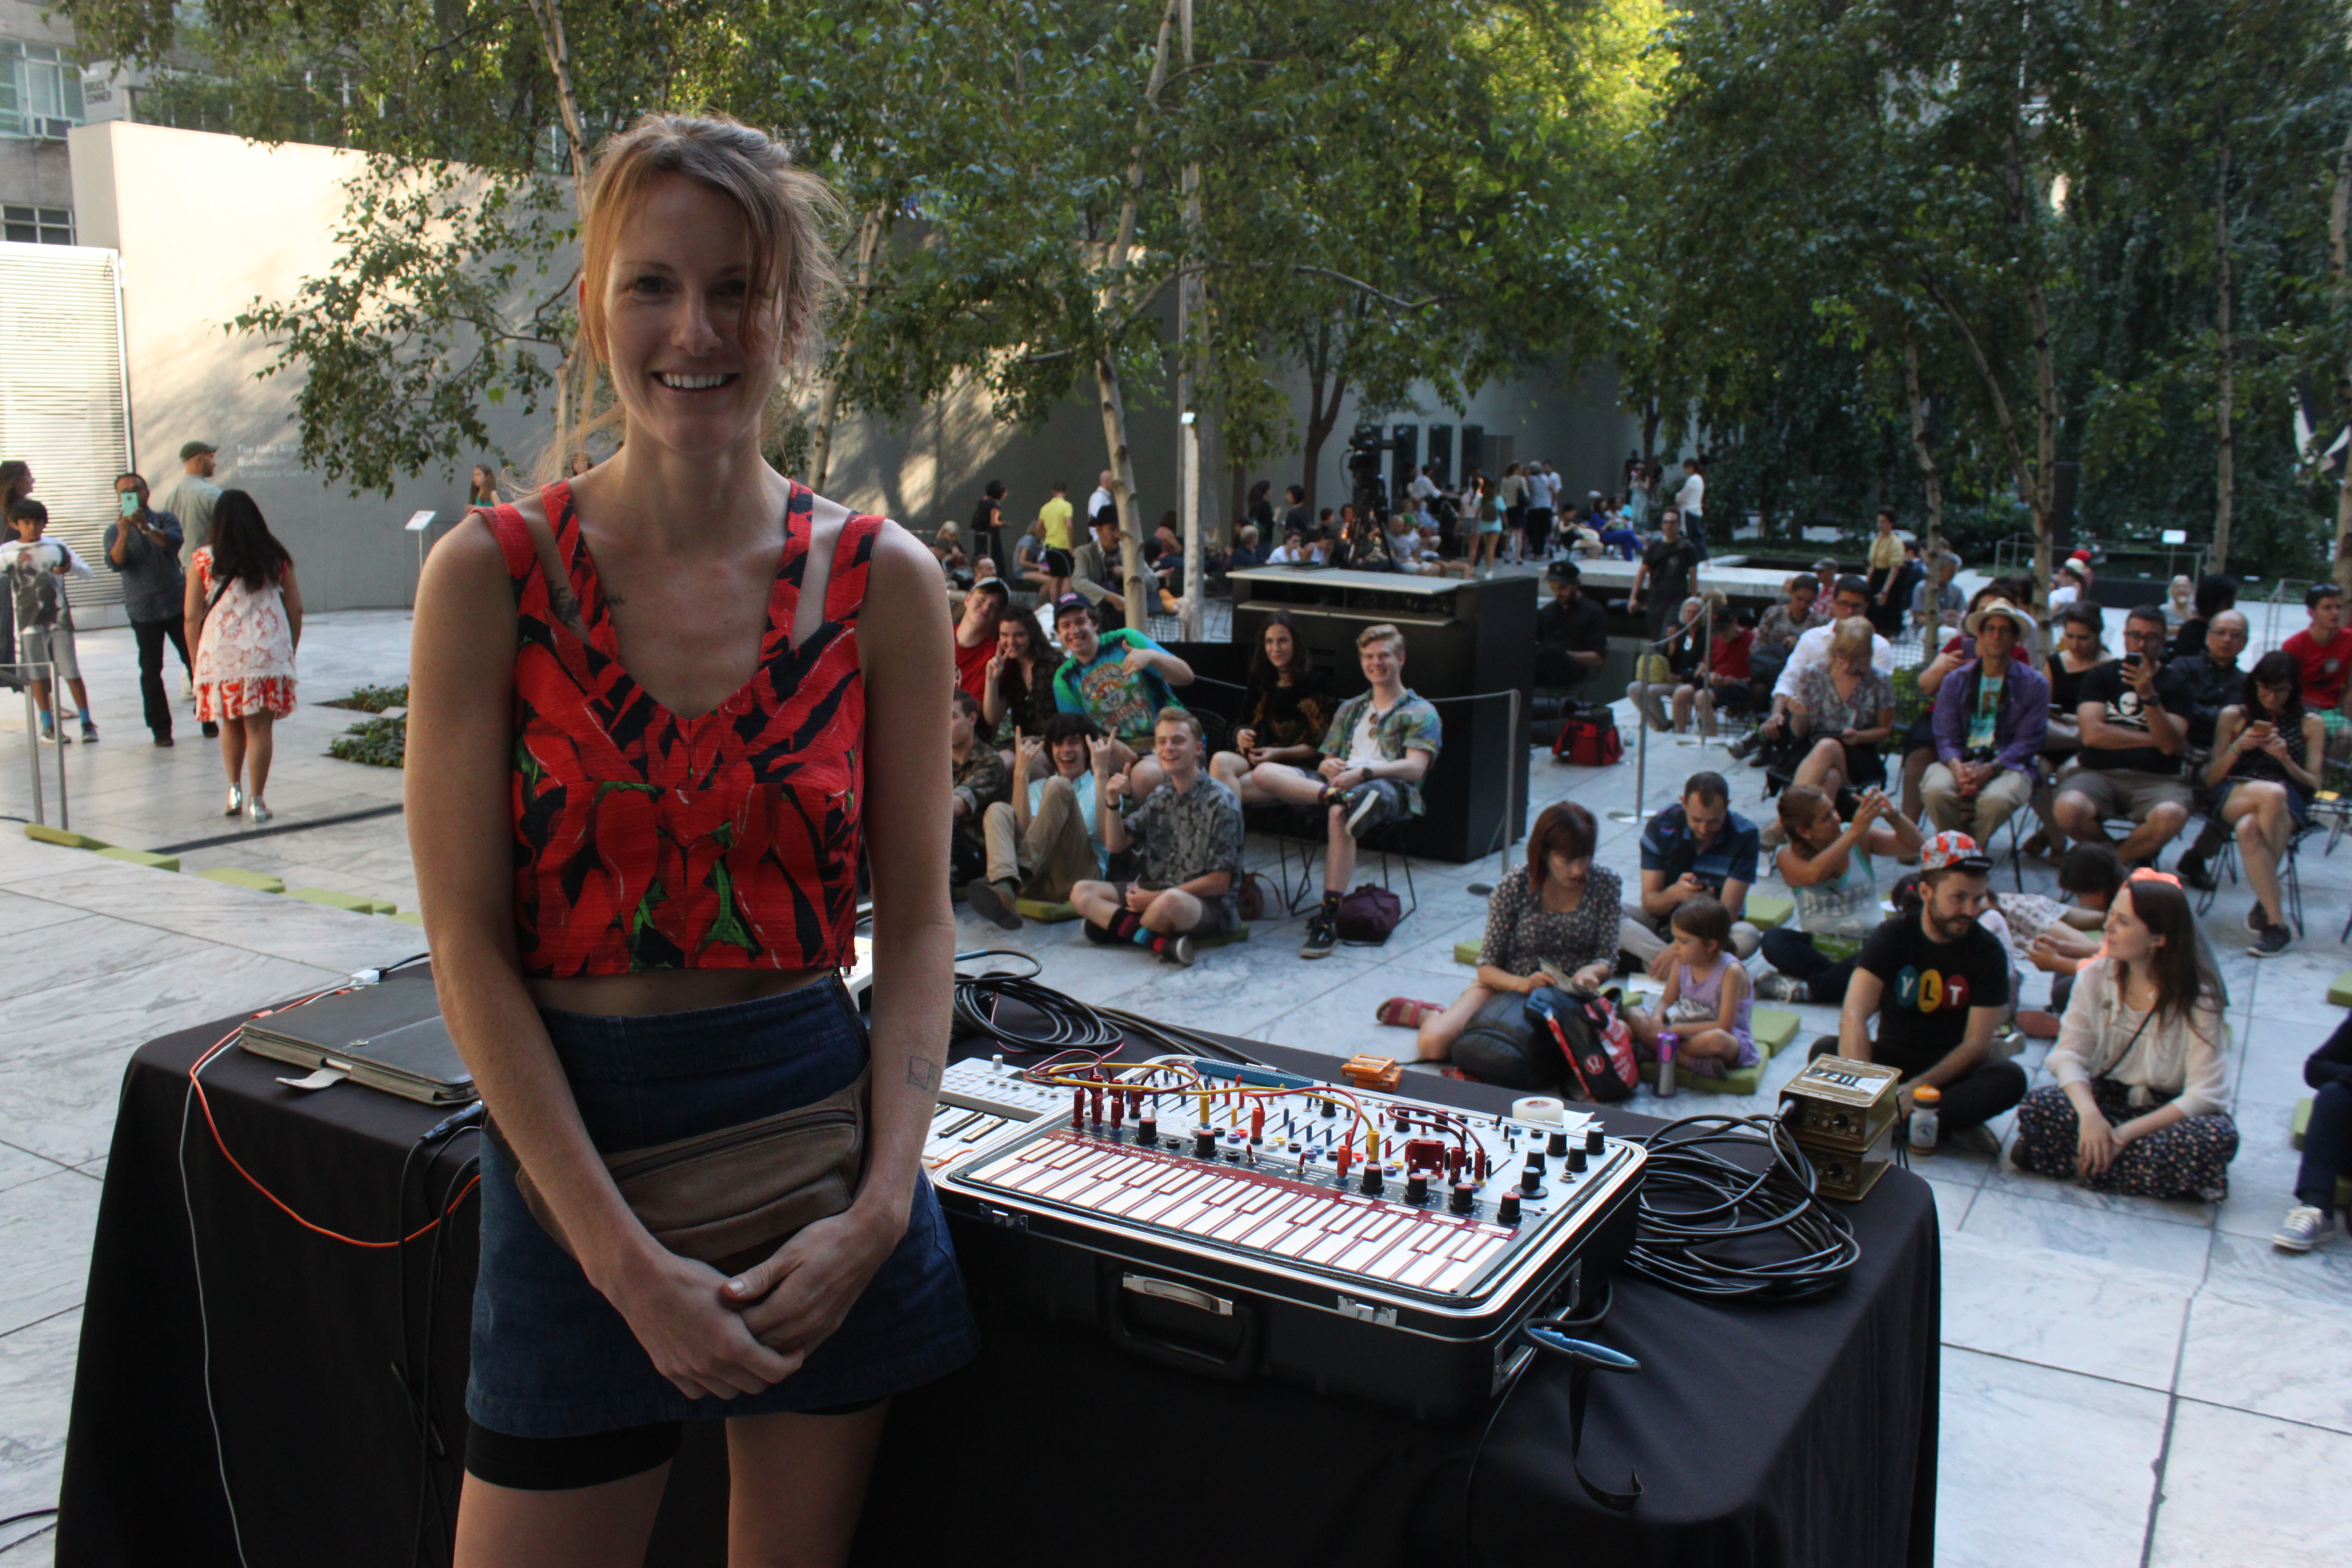 Kaitlyn Aurelia Smith was perfectly happy just hangin in the courtyard ahead of her fantastic set at MoMa Summer Thursdays.